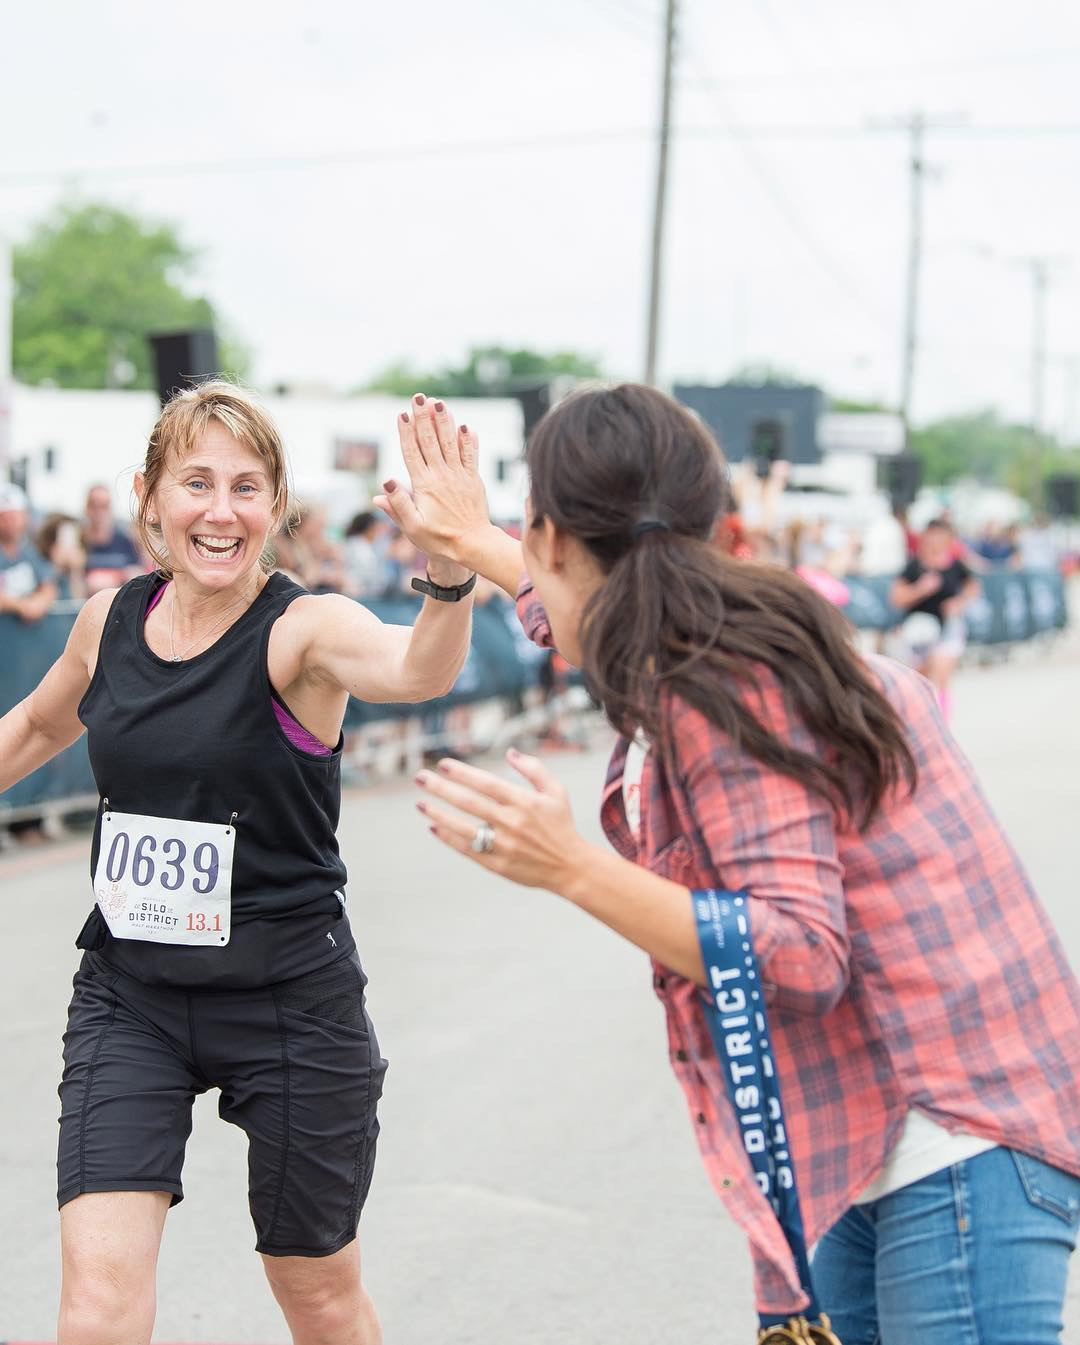 Chip Gaines running in the Silo District Marathon with Crew Gaines